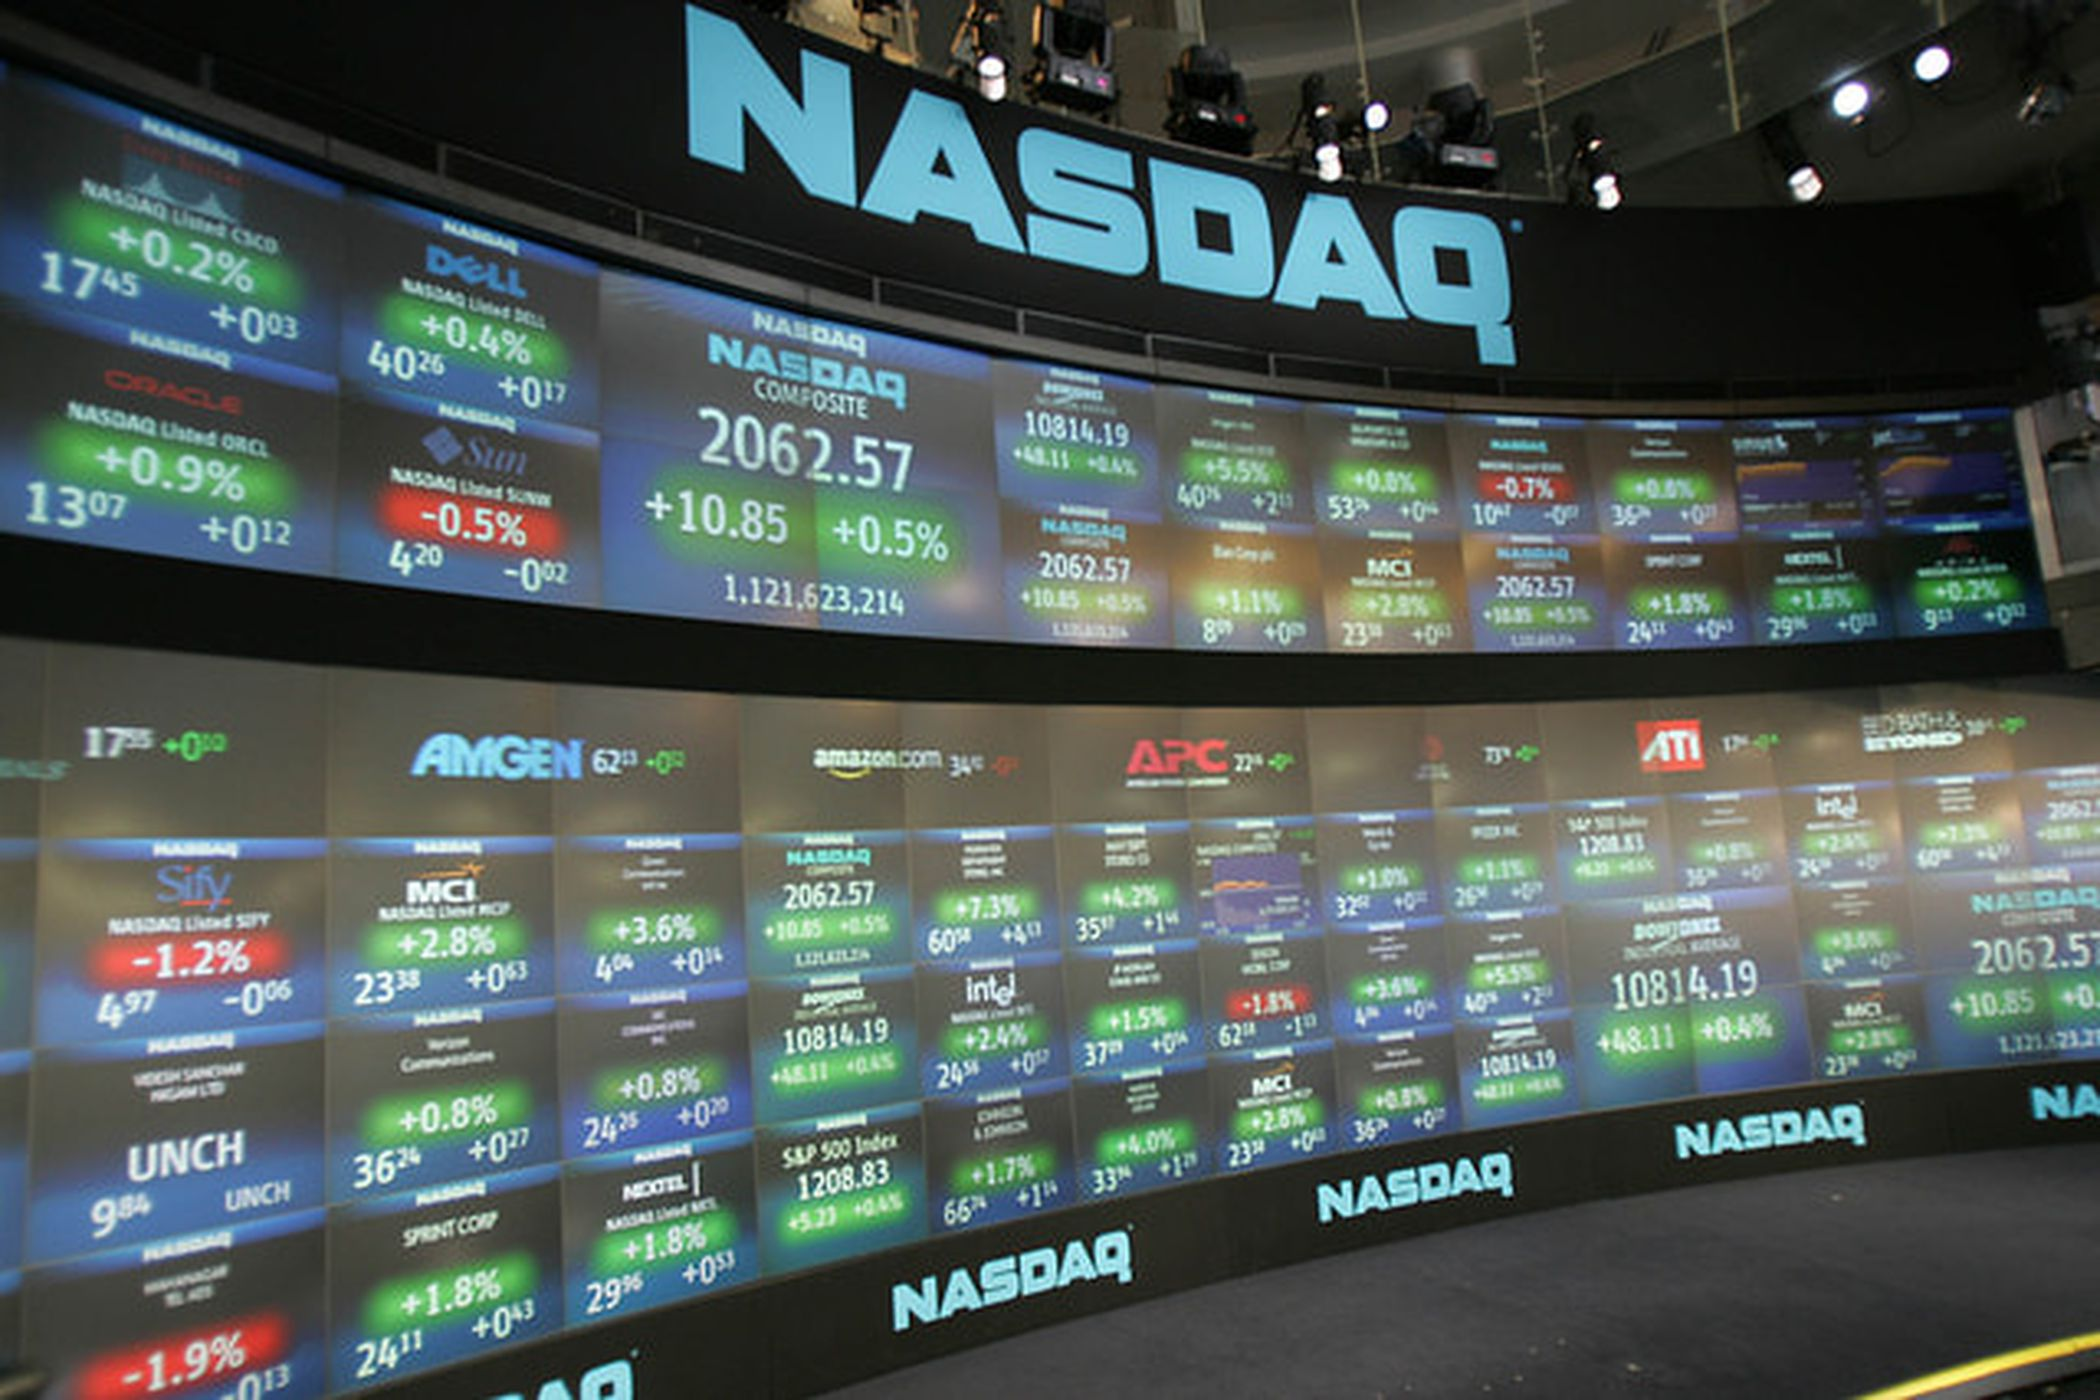 Top 5 Nasdaq Stocks for 2019 by Performance